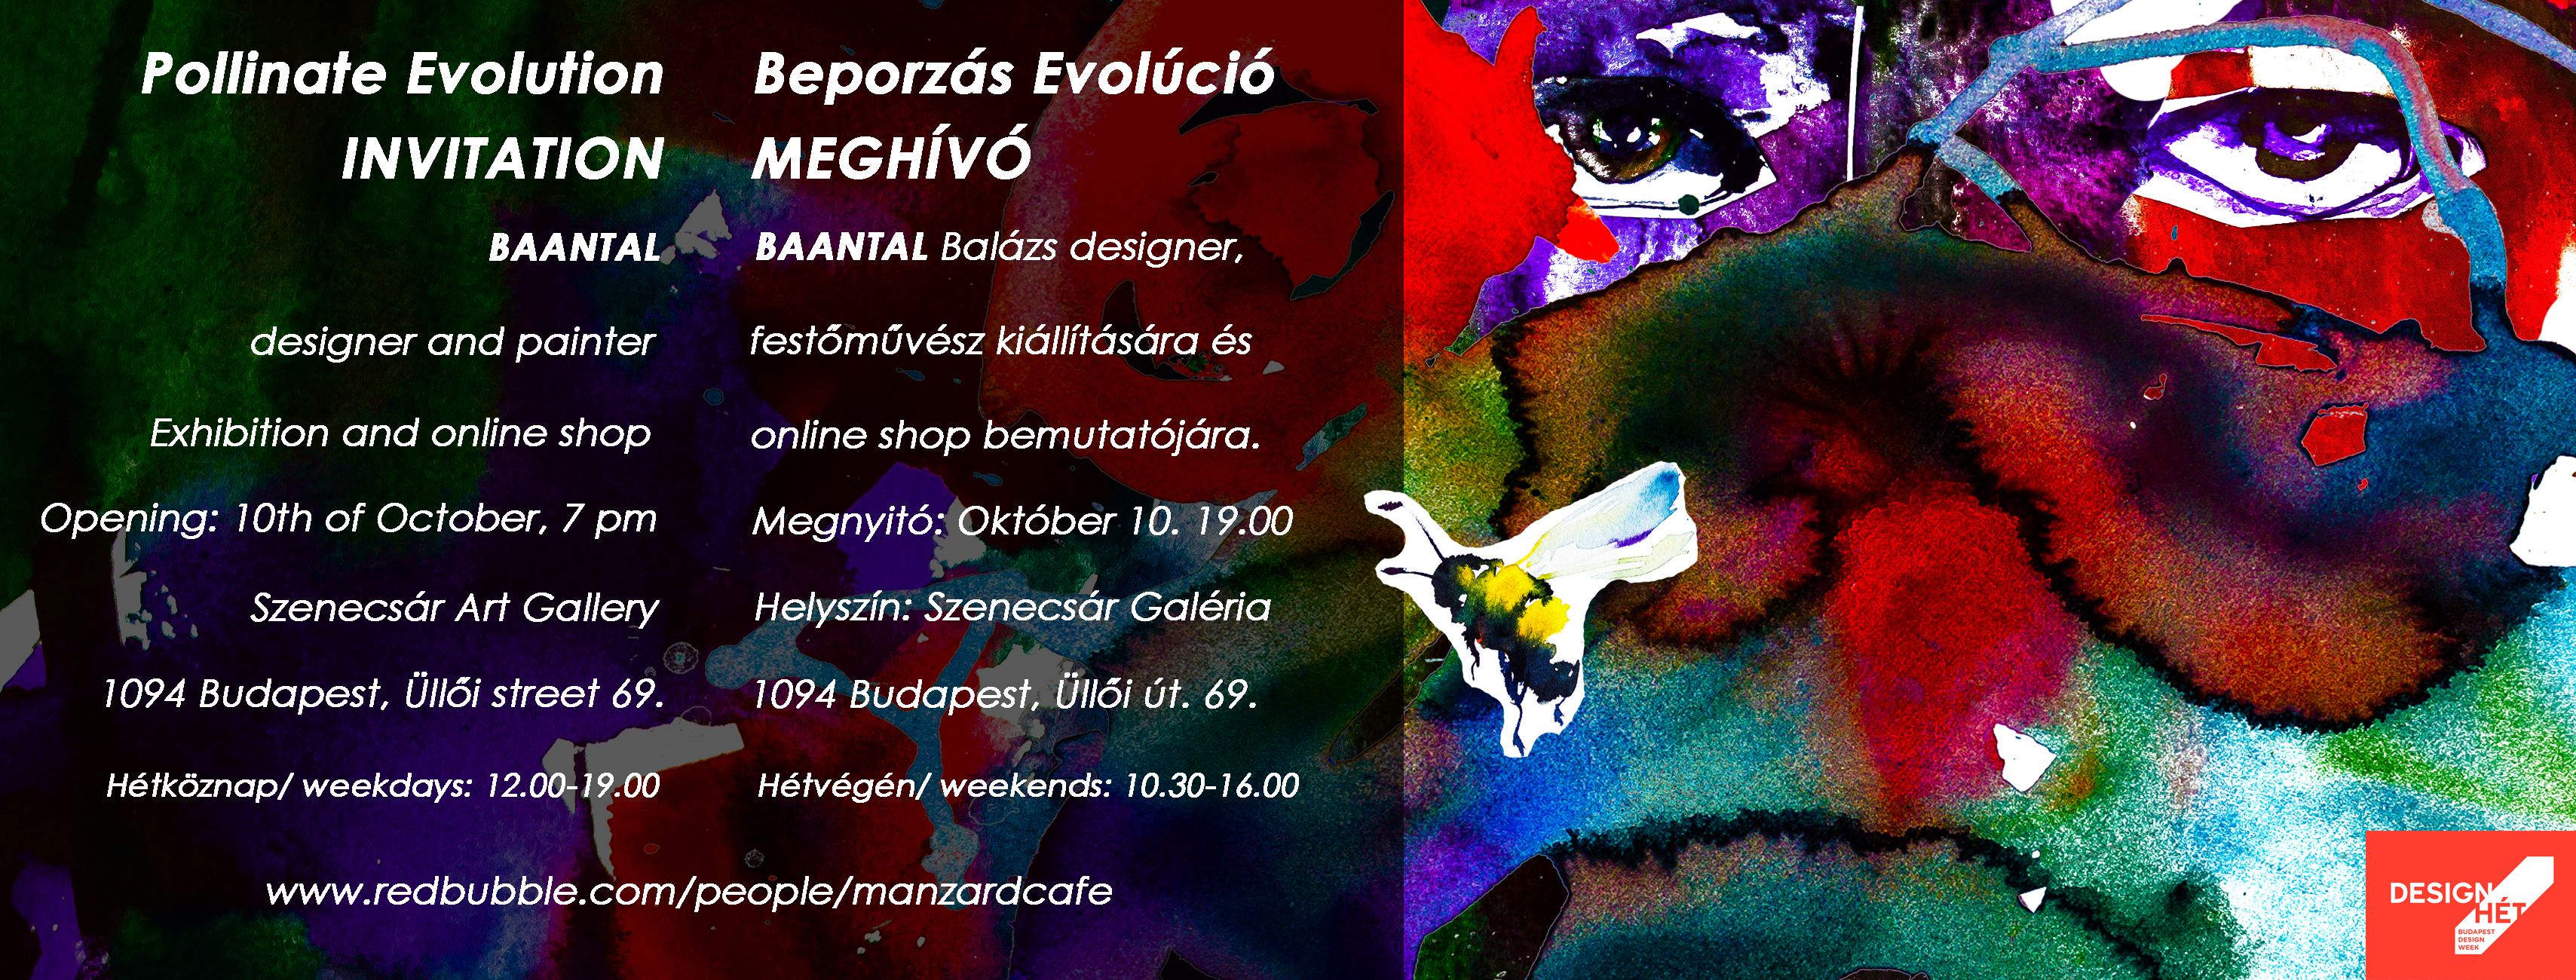 meghivo_baantal_invitation_kiallitas_exhibition_and_online_shop_1.jpg